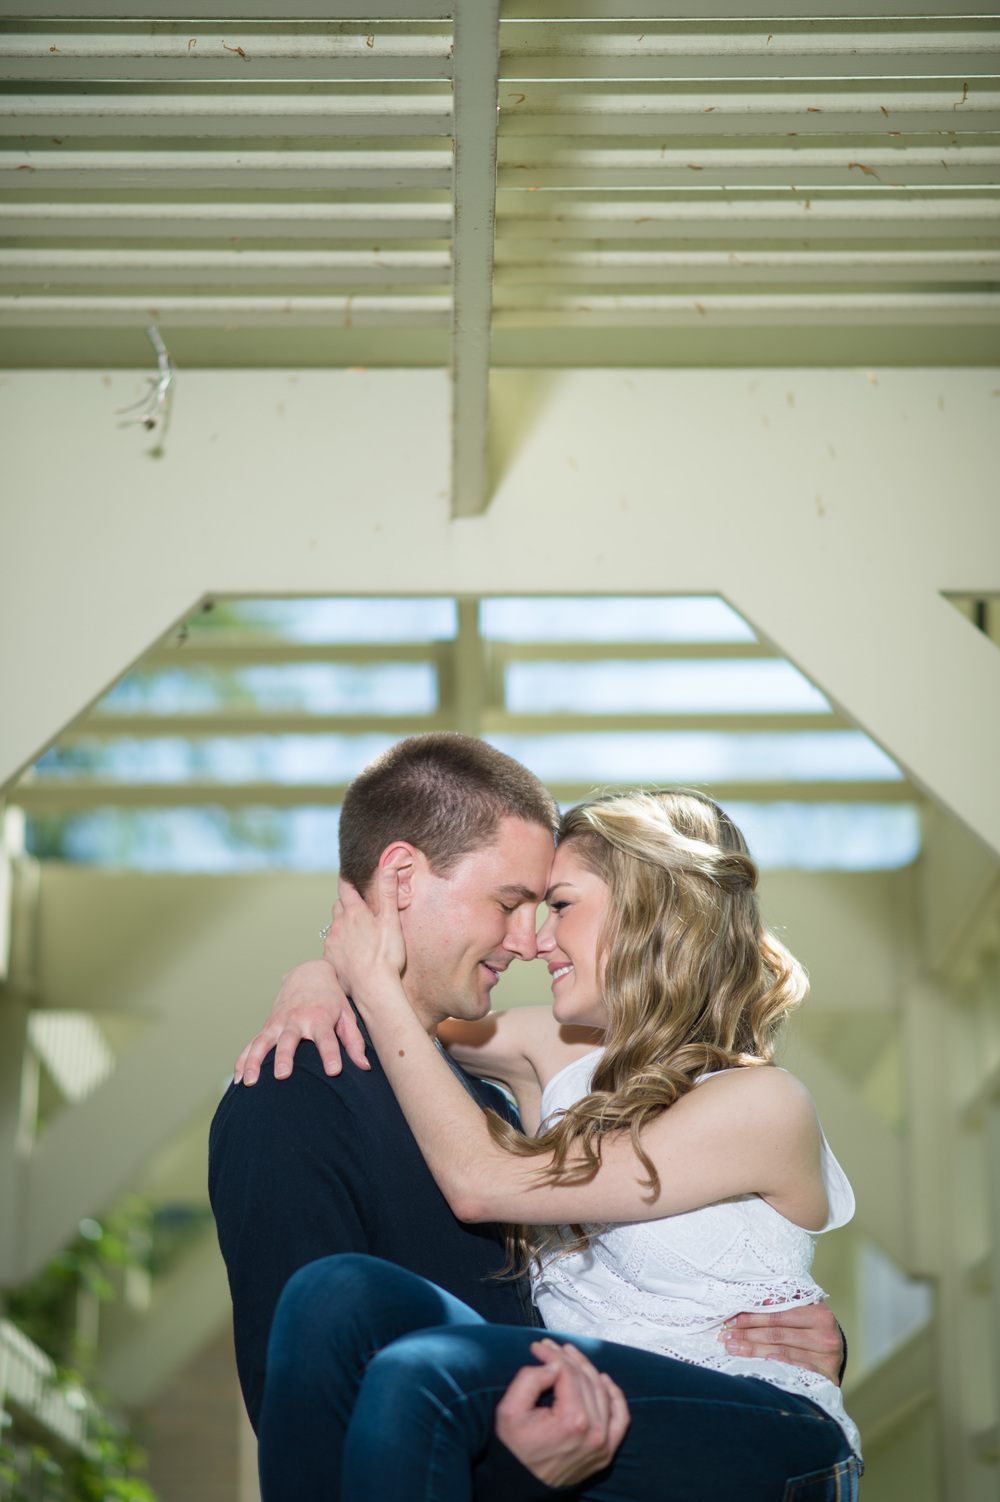 Angela&CurtisEngagement-153.jpg